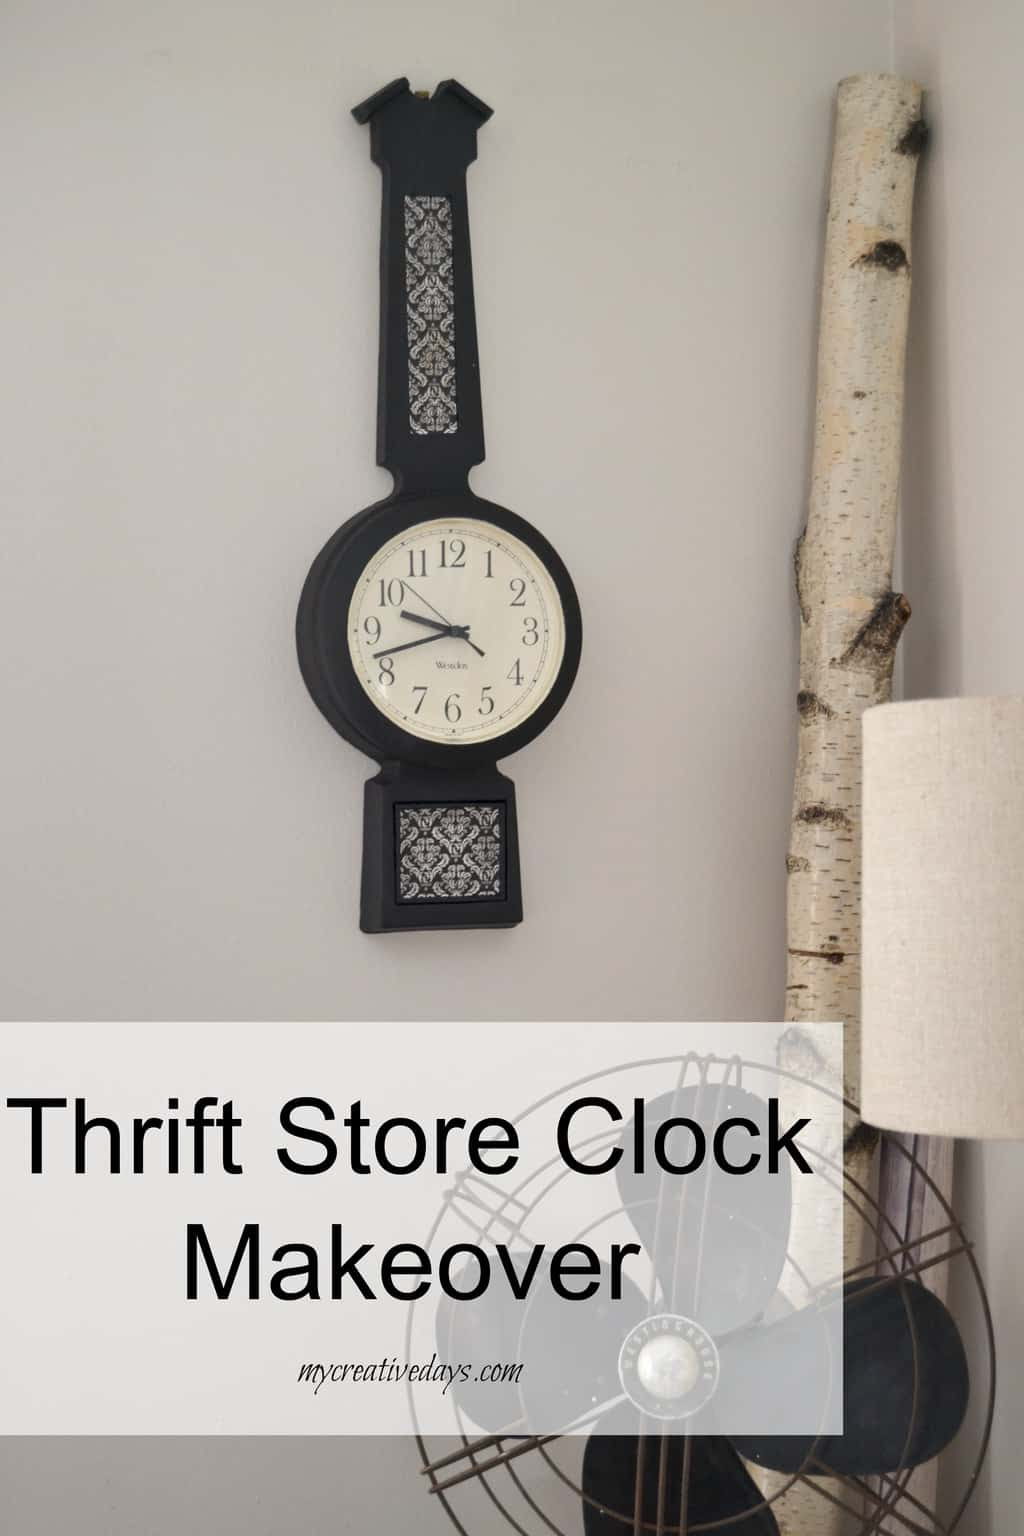 Thrift Store Clock Makeover mycreativedays.com